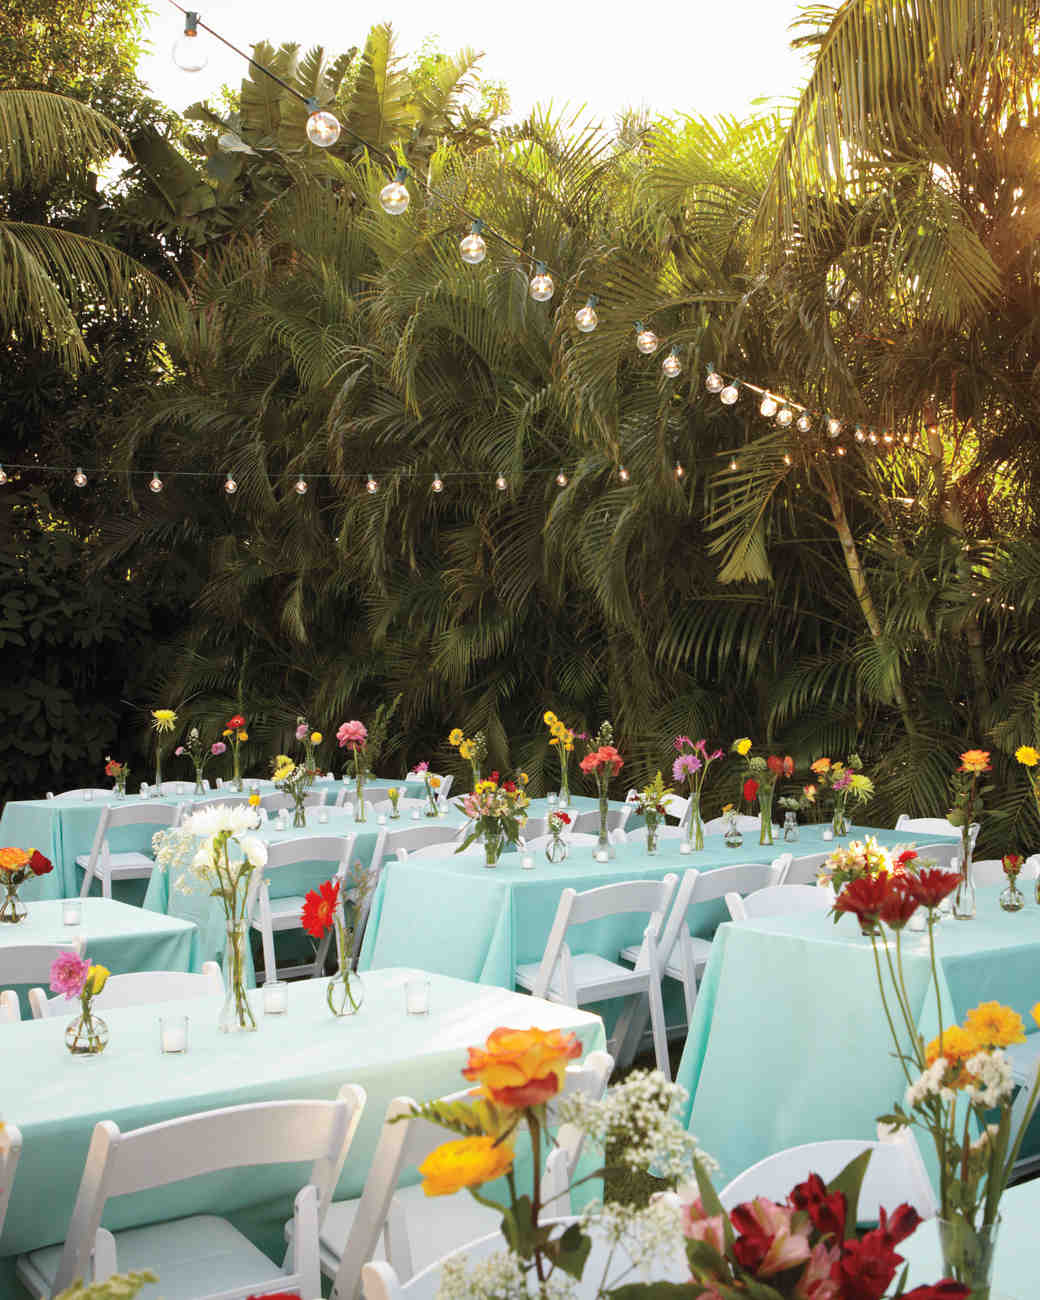 Outdoor Wedding Reception Ideas: 16 Things You Need To Know To Pull Off An Outdoor Wedding